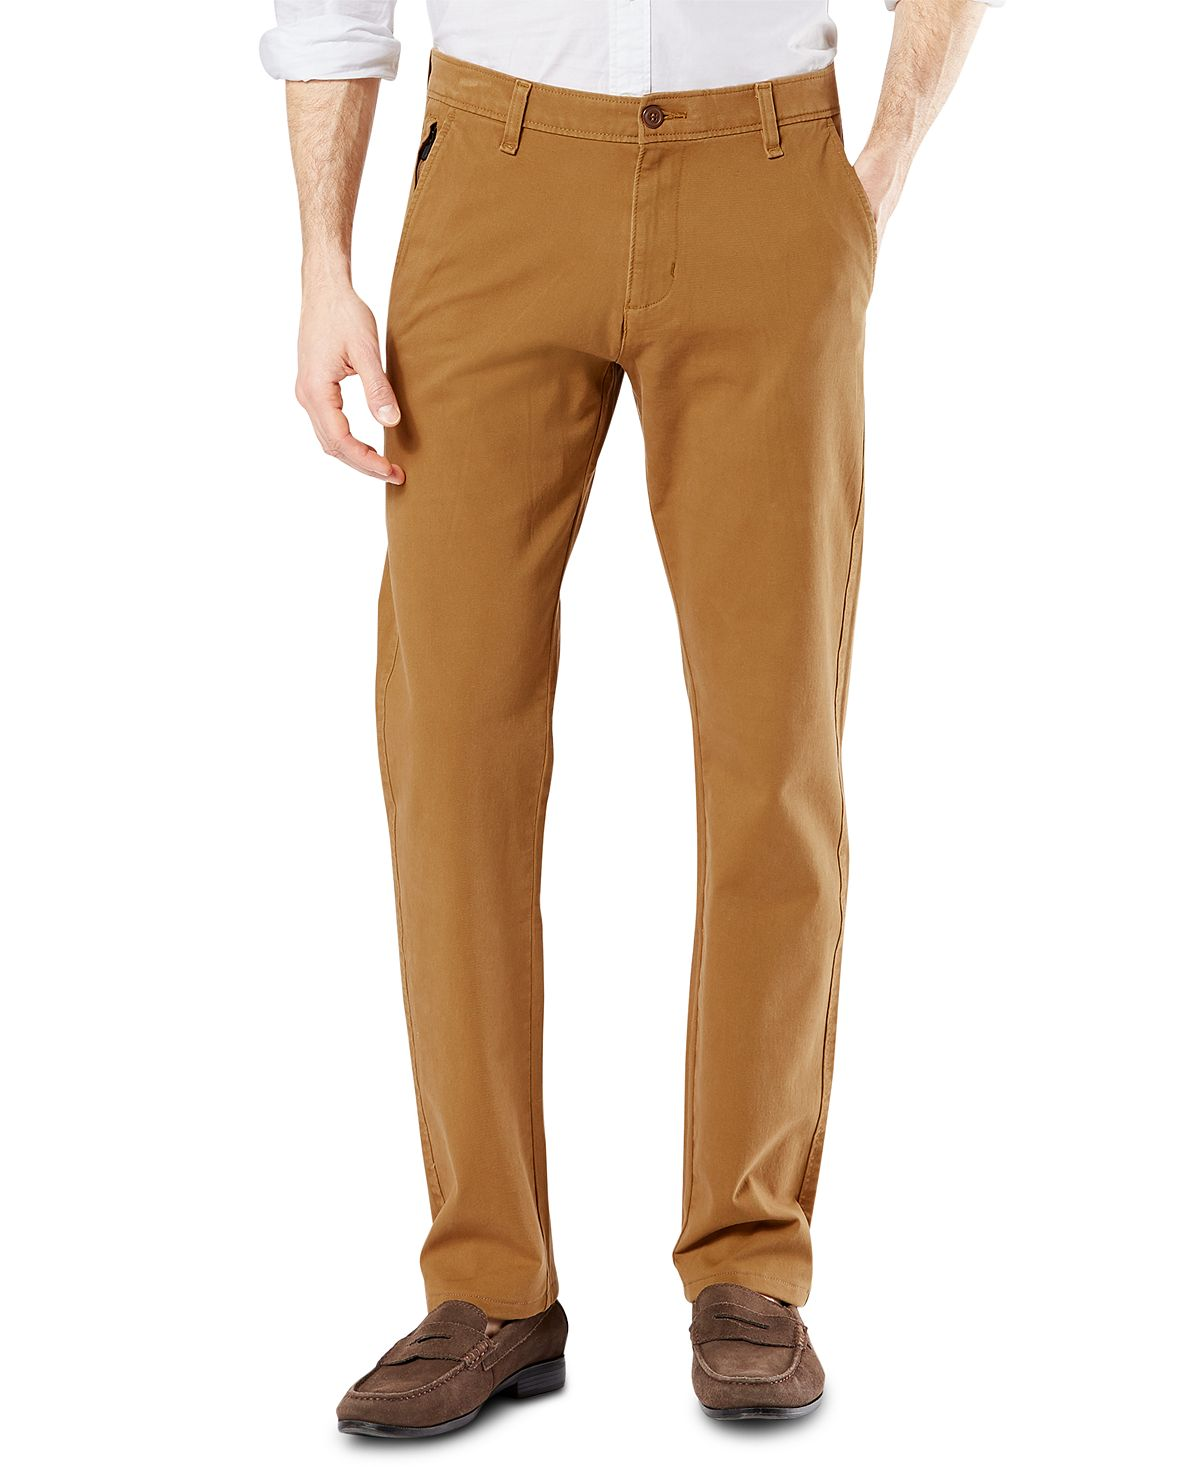 Dockers Ultimate 360 Slim-fit Chino Pants Dark Ginger